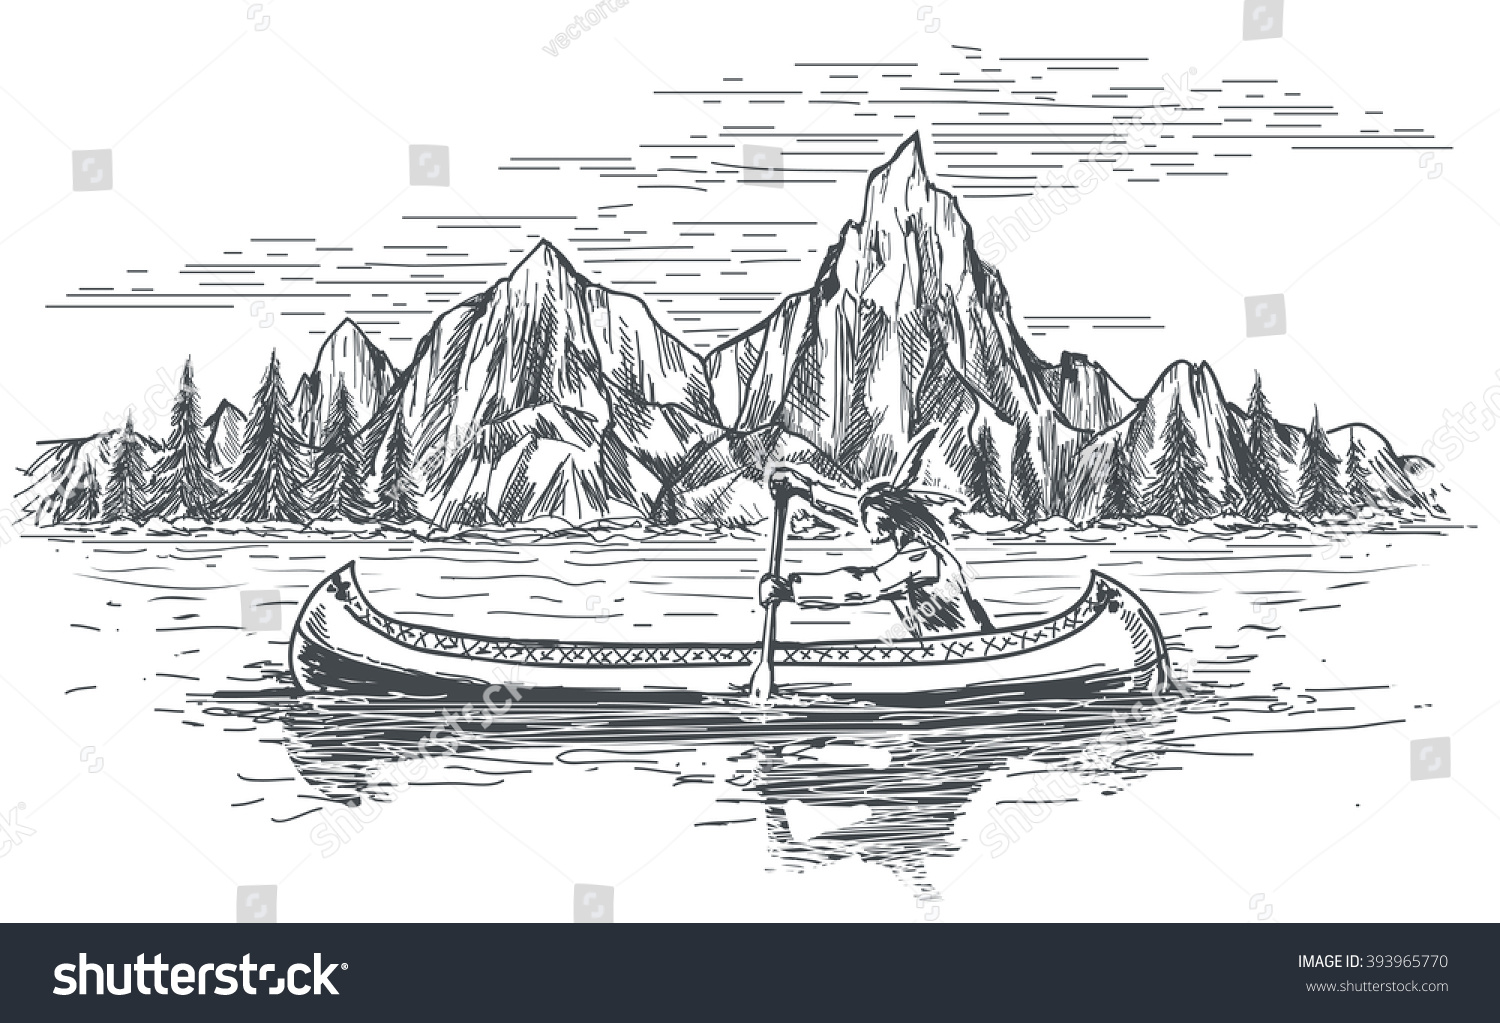 Native American Rowing Indian In Canoe Boat On Mountain Landscape Hand Drawn Vector Illustration